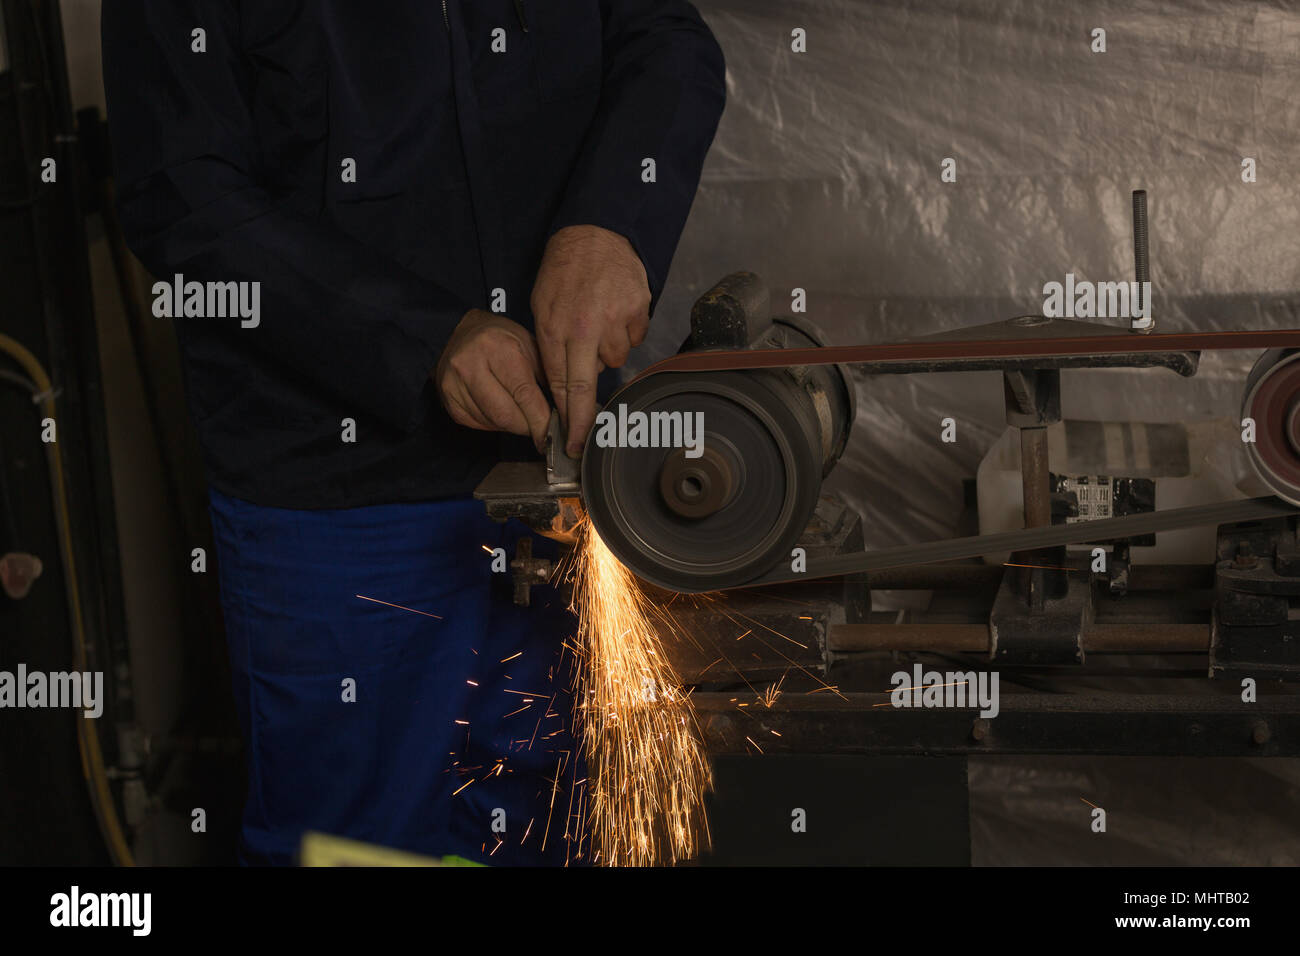 Worker shaping metal on machine - Stock Image